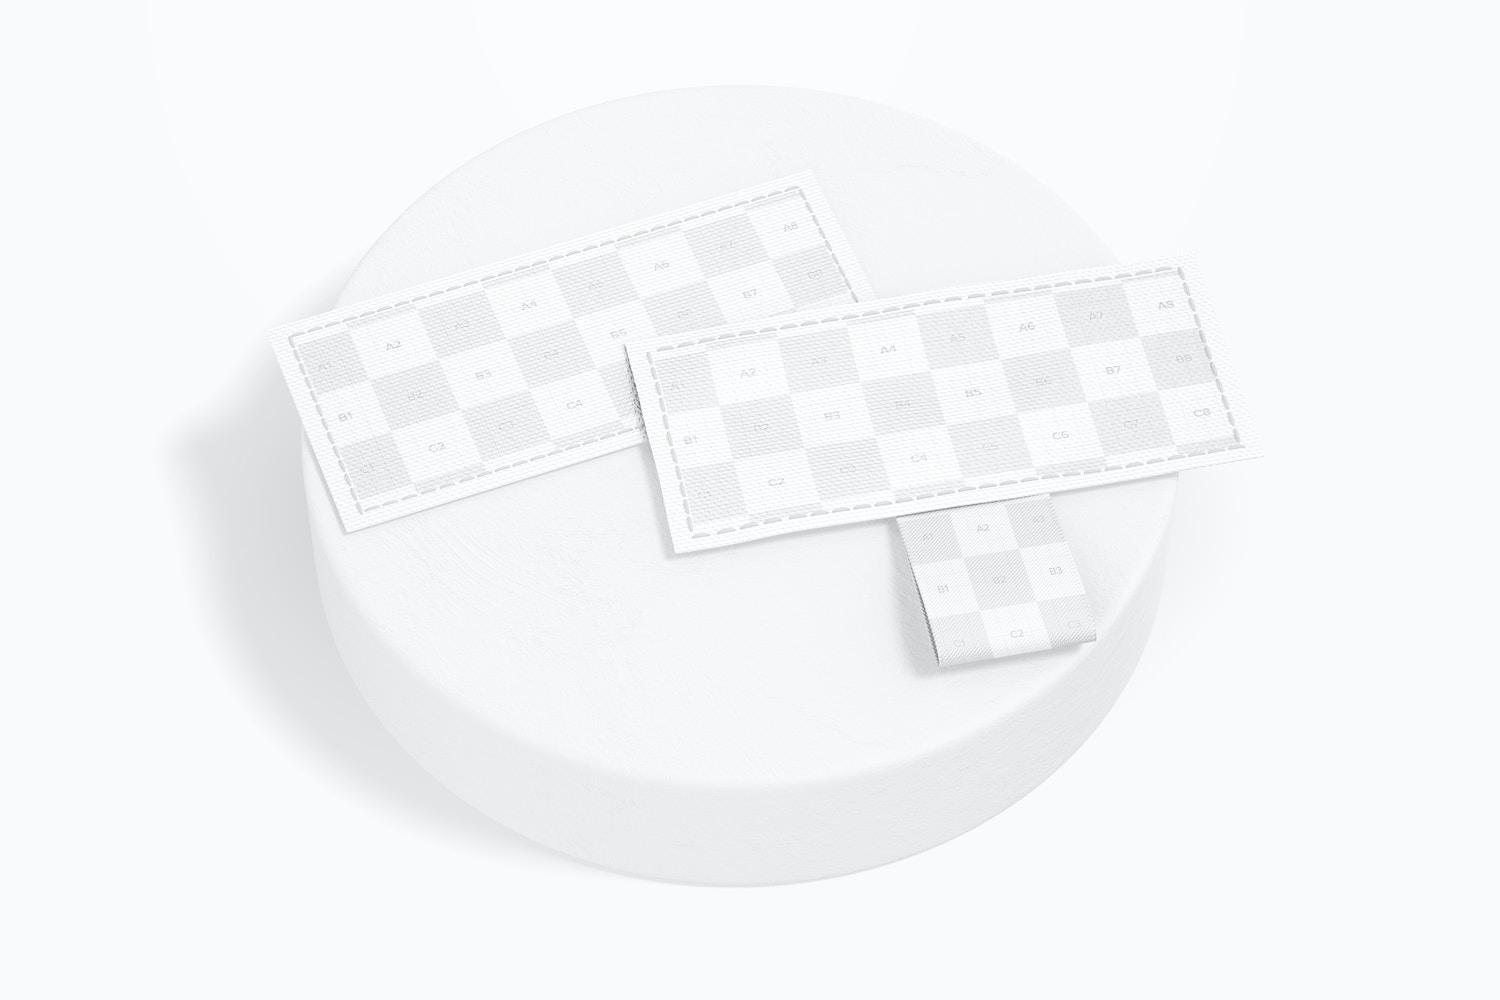 Rectangular Sewn-In Labels on Surface Mockup